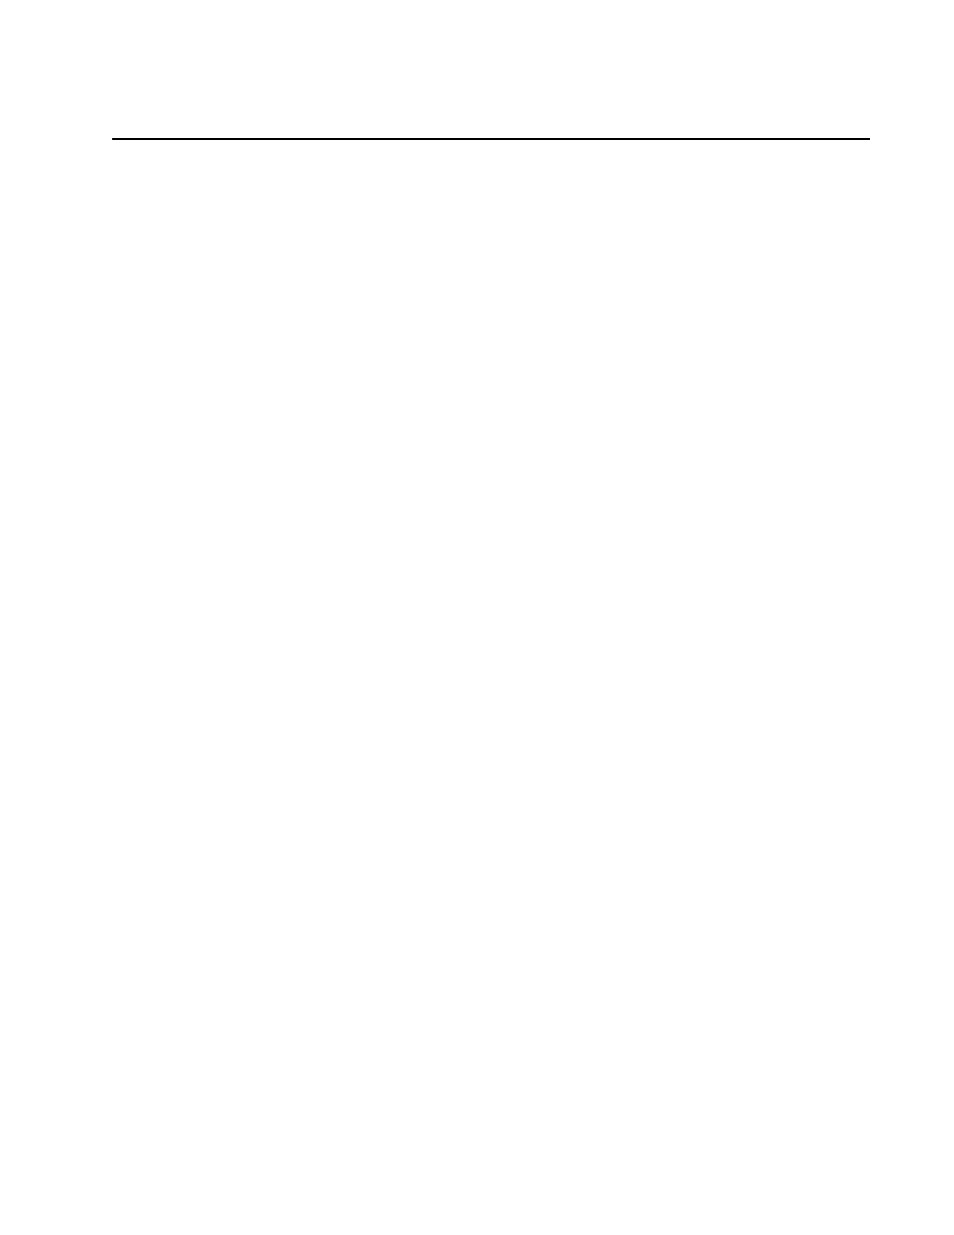 Ultra master installation, Hardware and software requirements